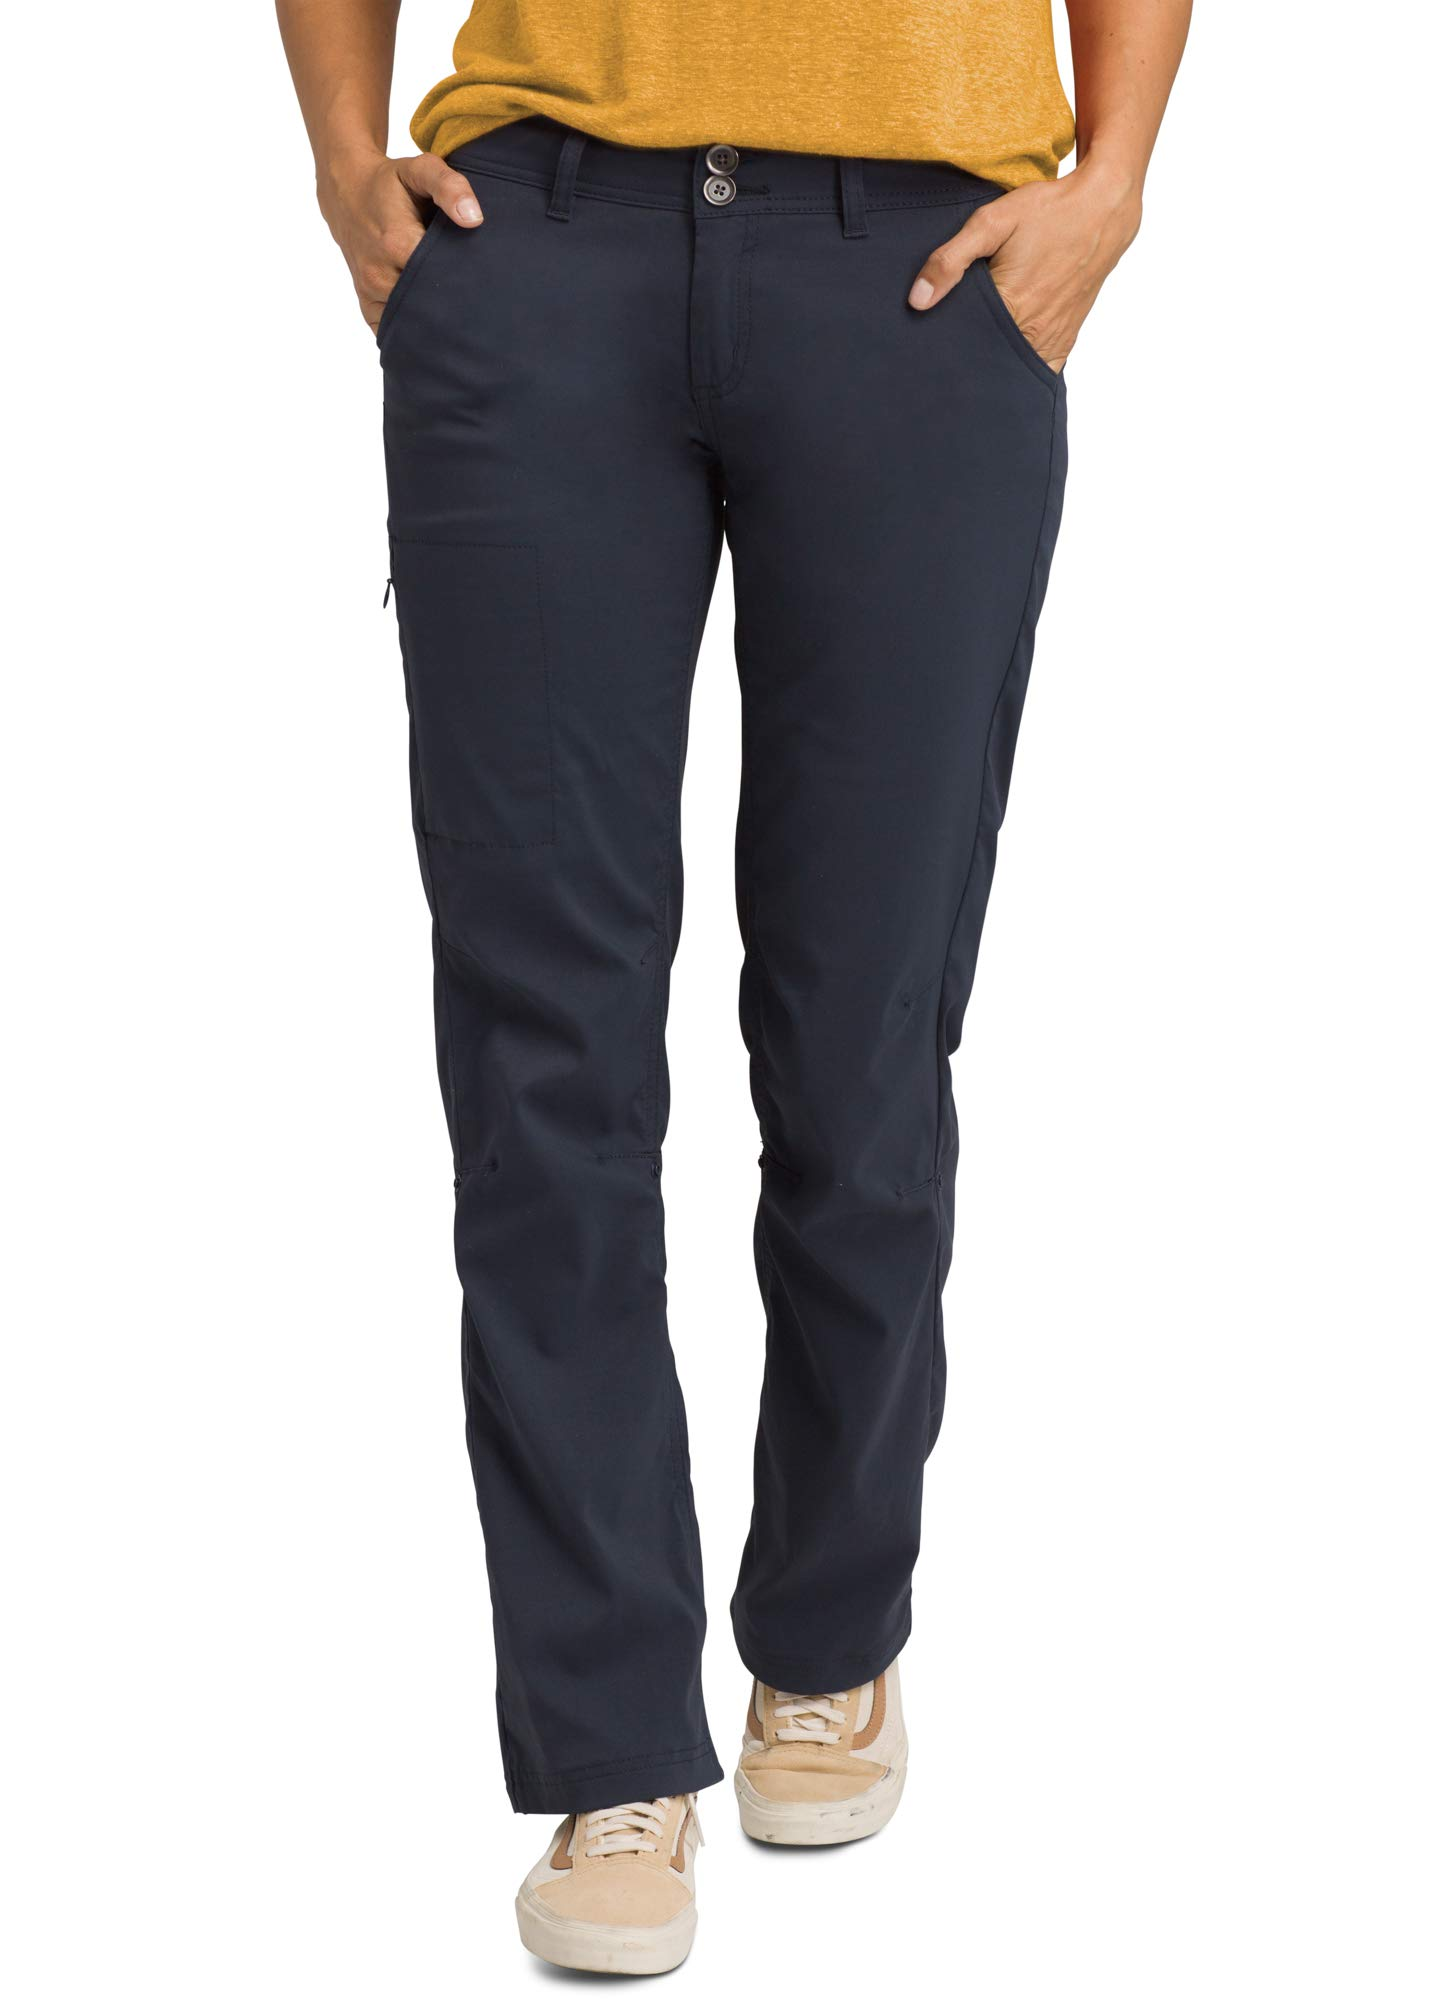 prAna - Women's Halle Roll-up, Water-Repellent Stretch Pants for Hiking and Everyday Wear, Tall Inseam, Nautical, 14 by prAna